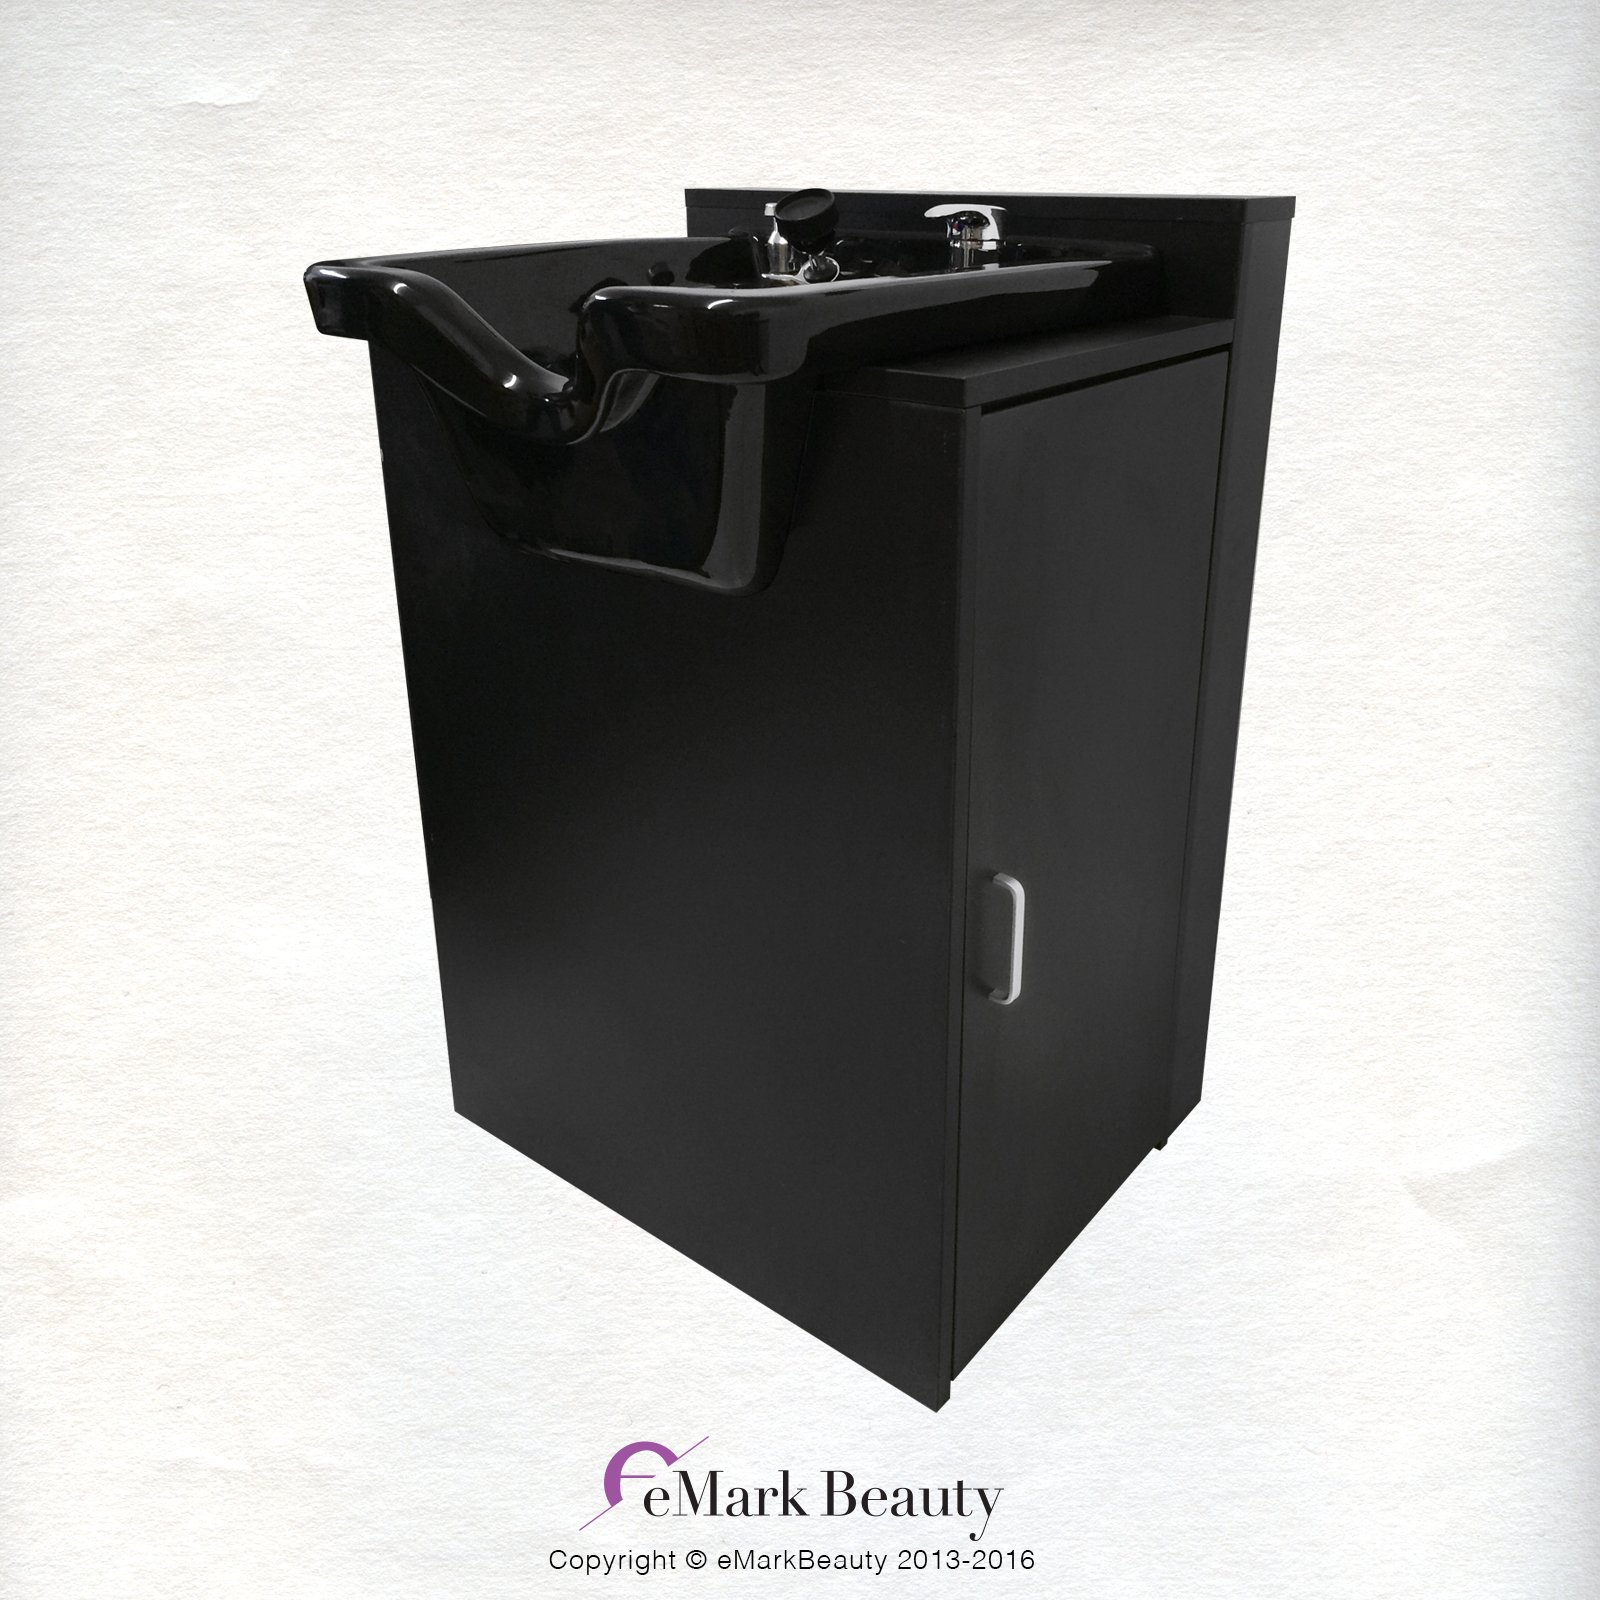 Salon Shampoo Square Bowl Spa Equipment Black Cabinet TLC-B11-FC by eMark Beauty